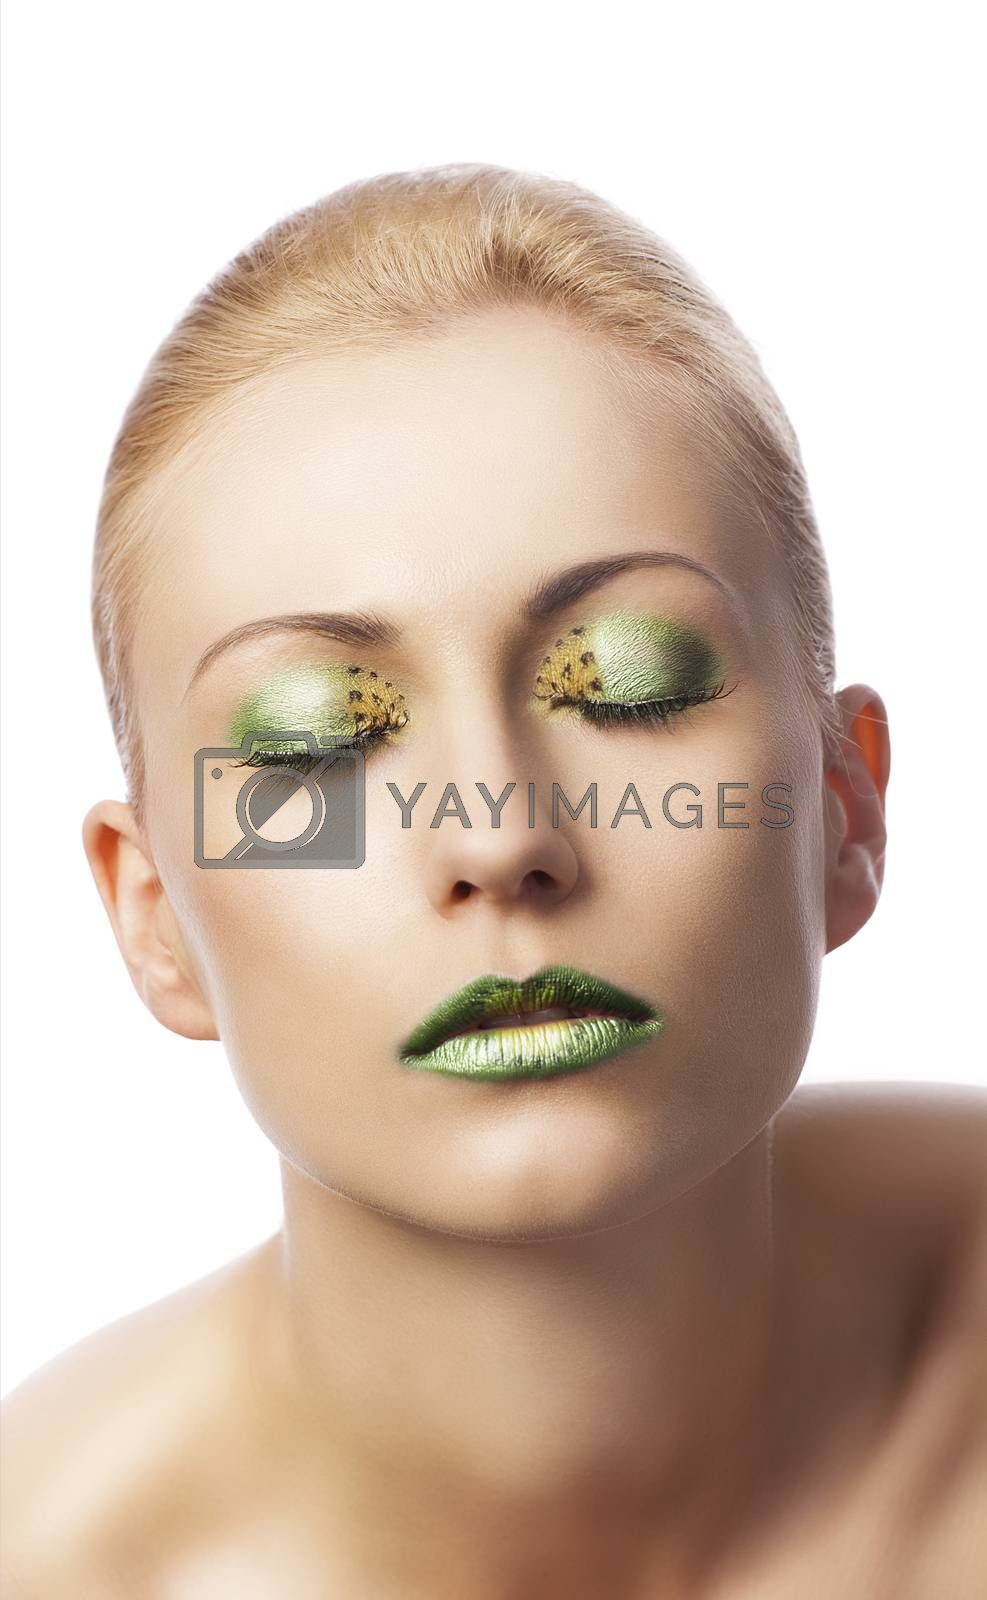 Royalty free image of the floral makeup, she is turned of three quarters by fotoCD